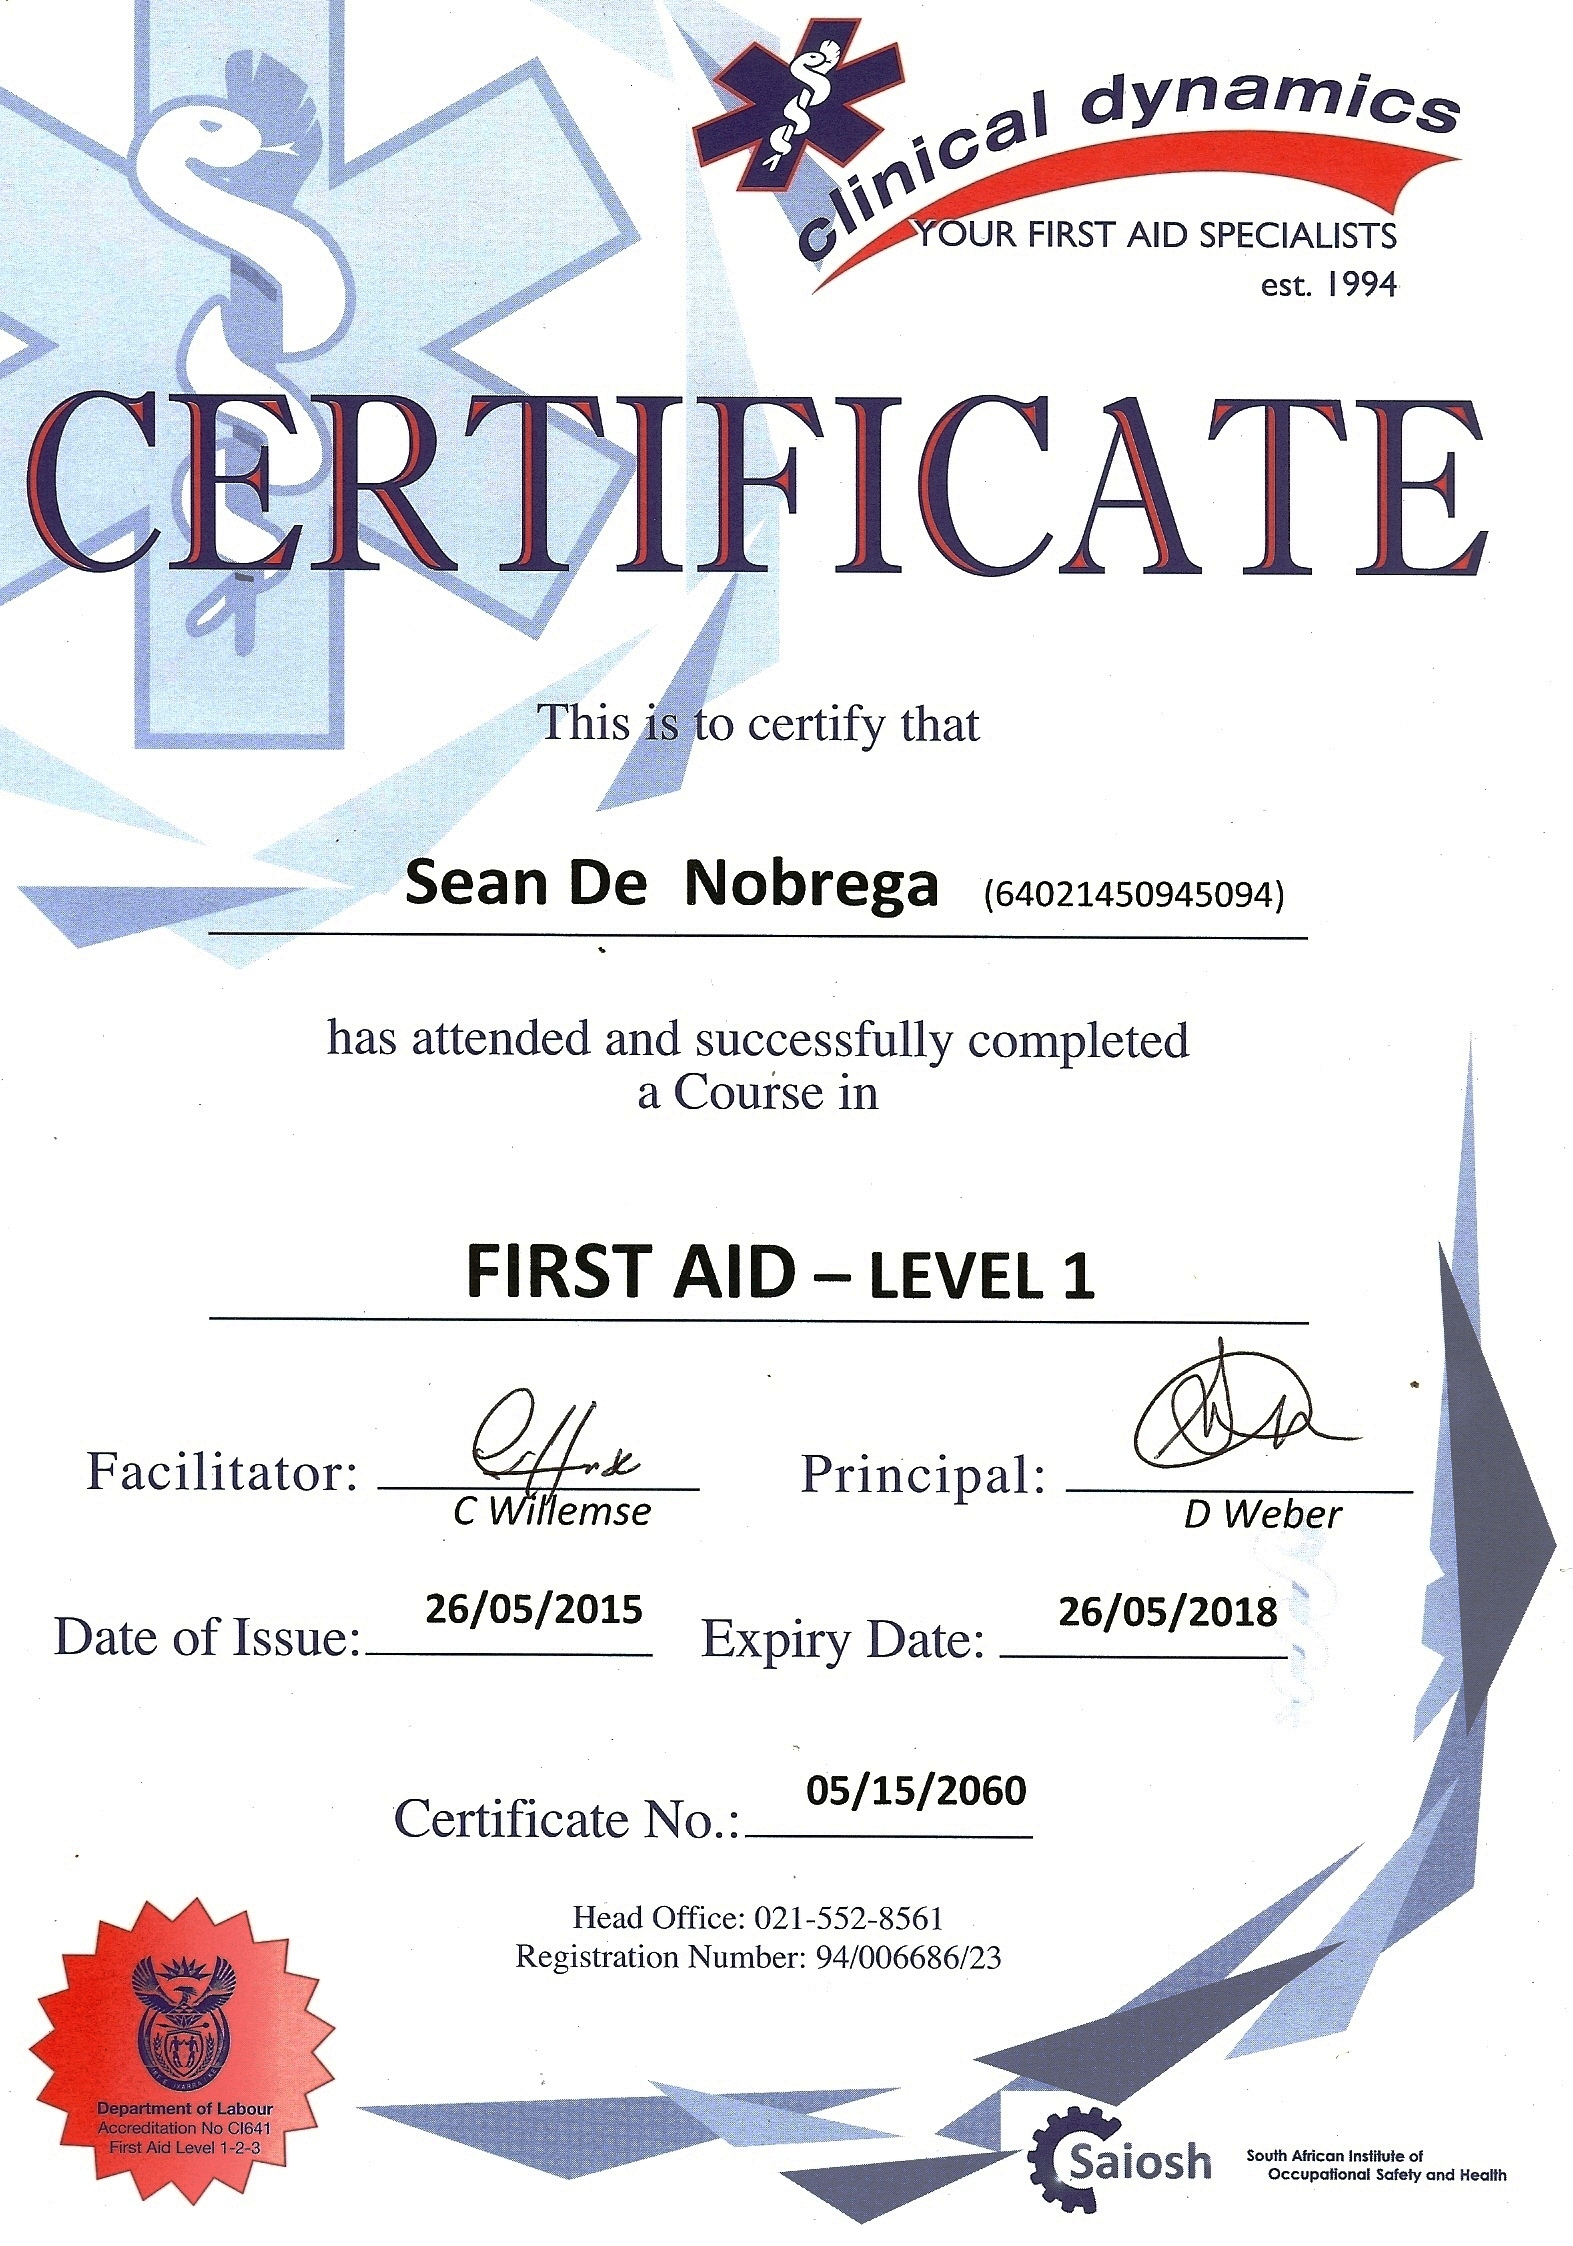 First aid certificate template sample bid proposal template about us absolute birding south african birding tours first20aid20certificate waboutphp first aid certificate template first aid certificate template yadclub Choice Image